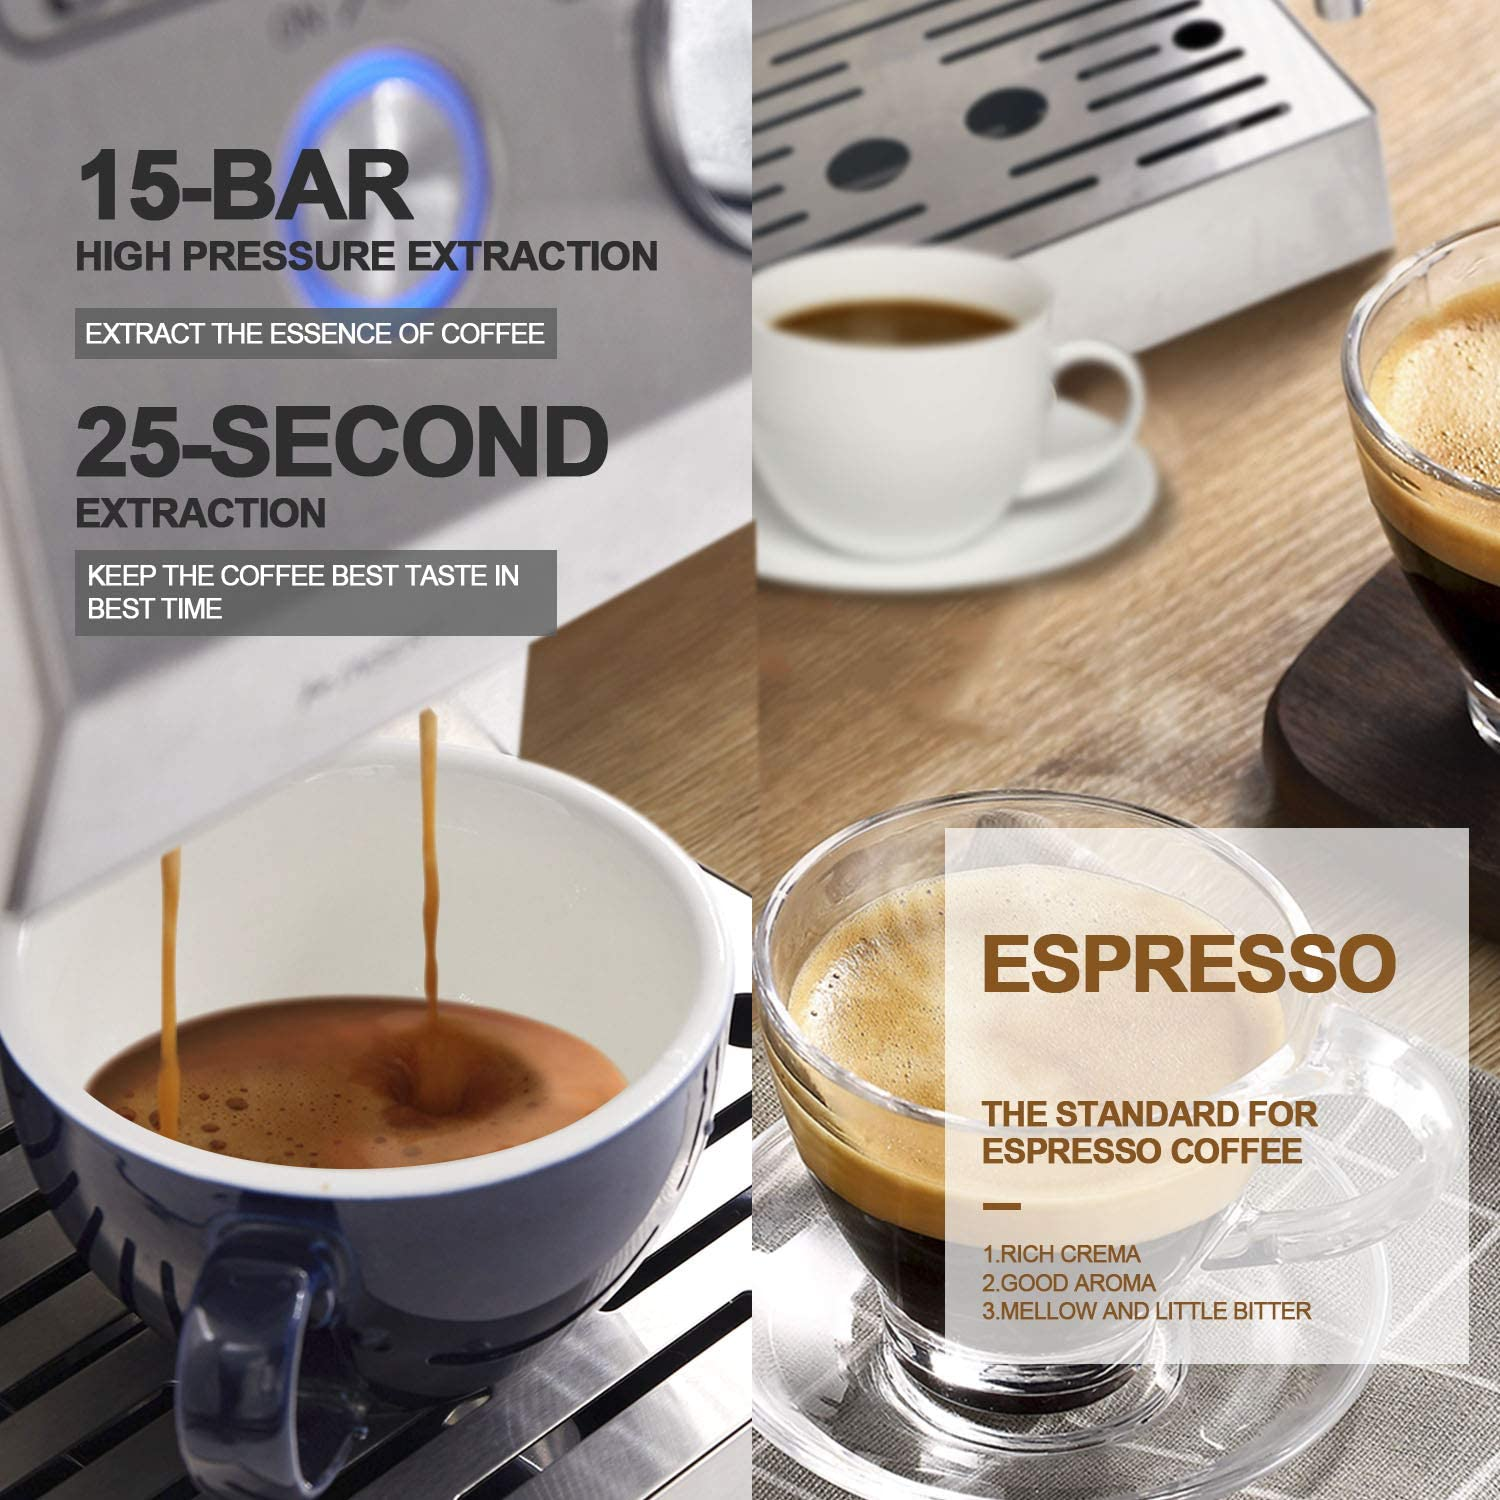 Espresso Machine, Coffee Machine with 15 bar Pump Powerful Pressure Coffee Brewer, Coffee maker with Milk Frother Wand for Cappuccino Latte and Mocha, ...